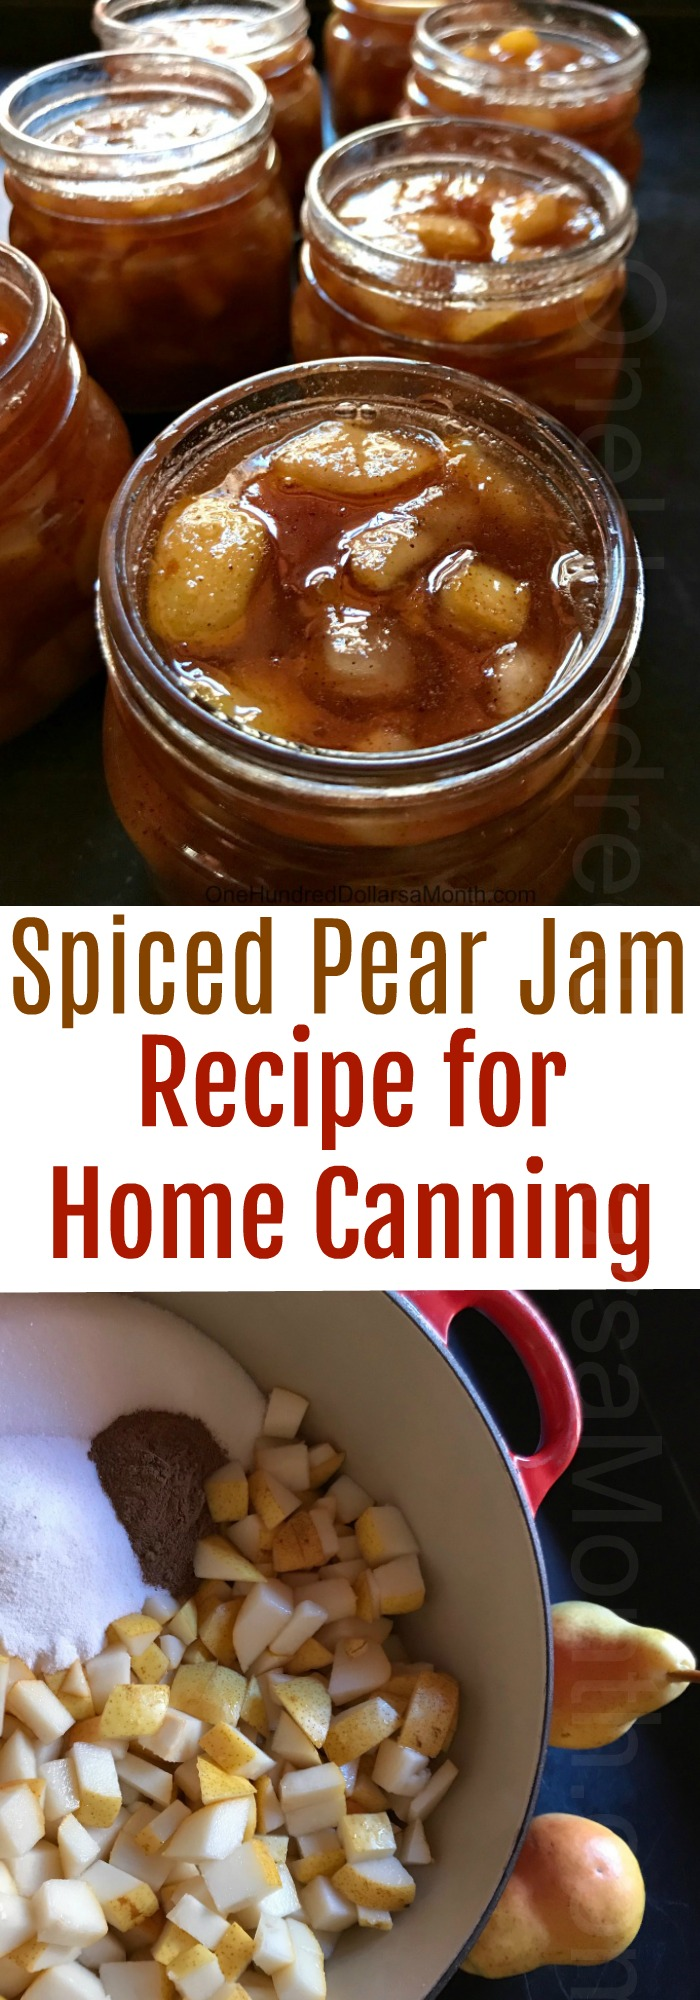 Spiced Pear Jam for Home Canning